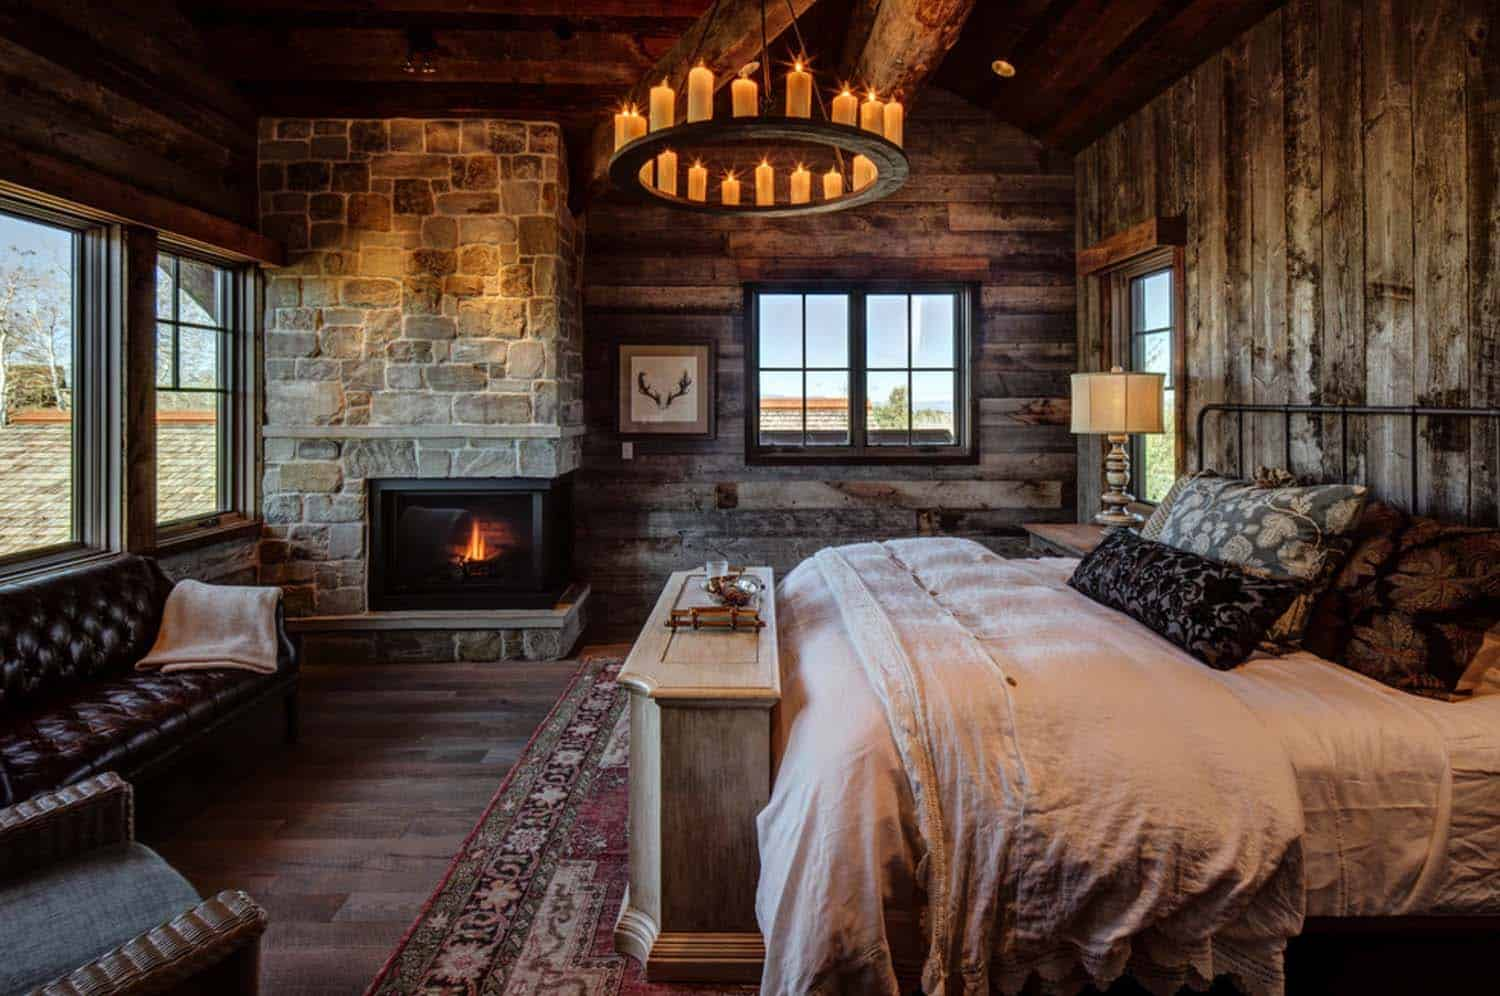 35 gorgeous log cabin style bedrooms to make you drool Rustic style attic design a corner full of passion